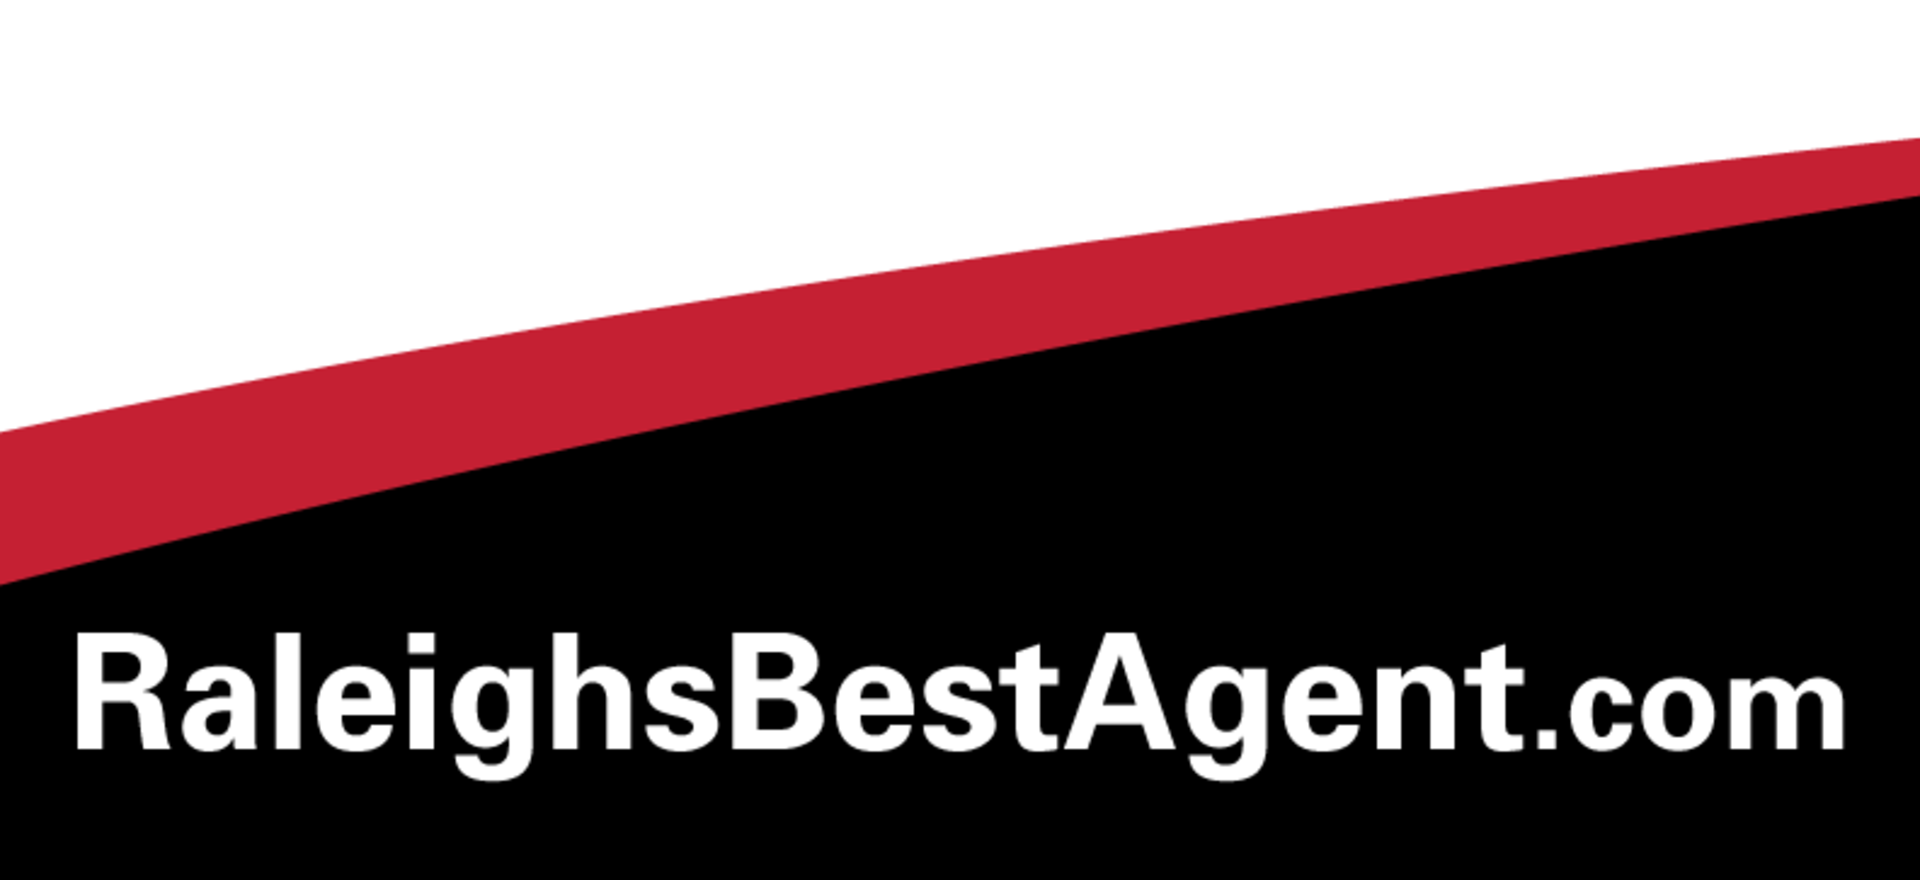 Five Qualities Distinguish the Best Raleigh Real Estate Agent